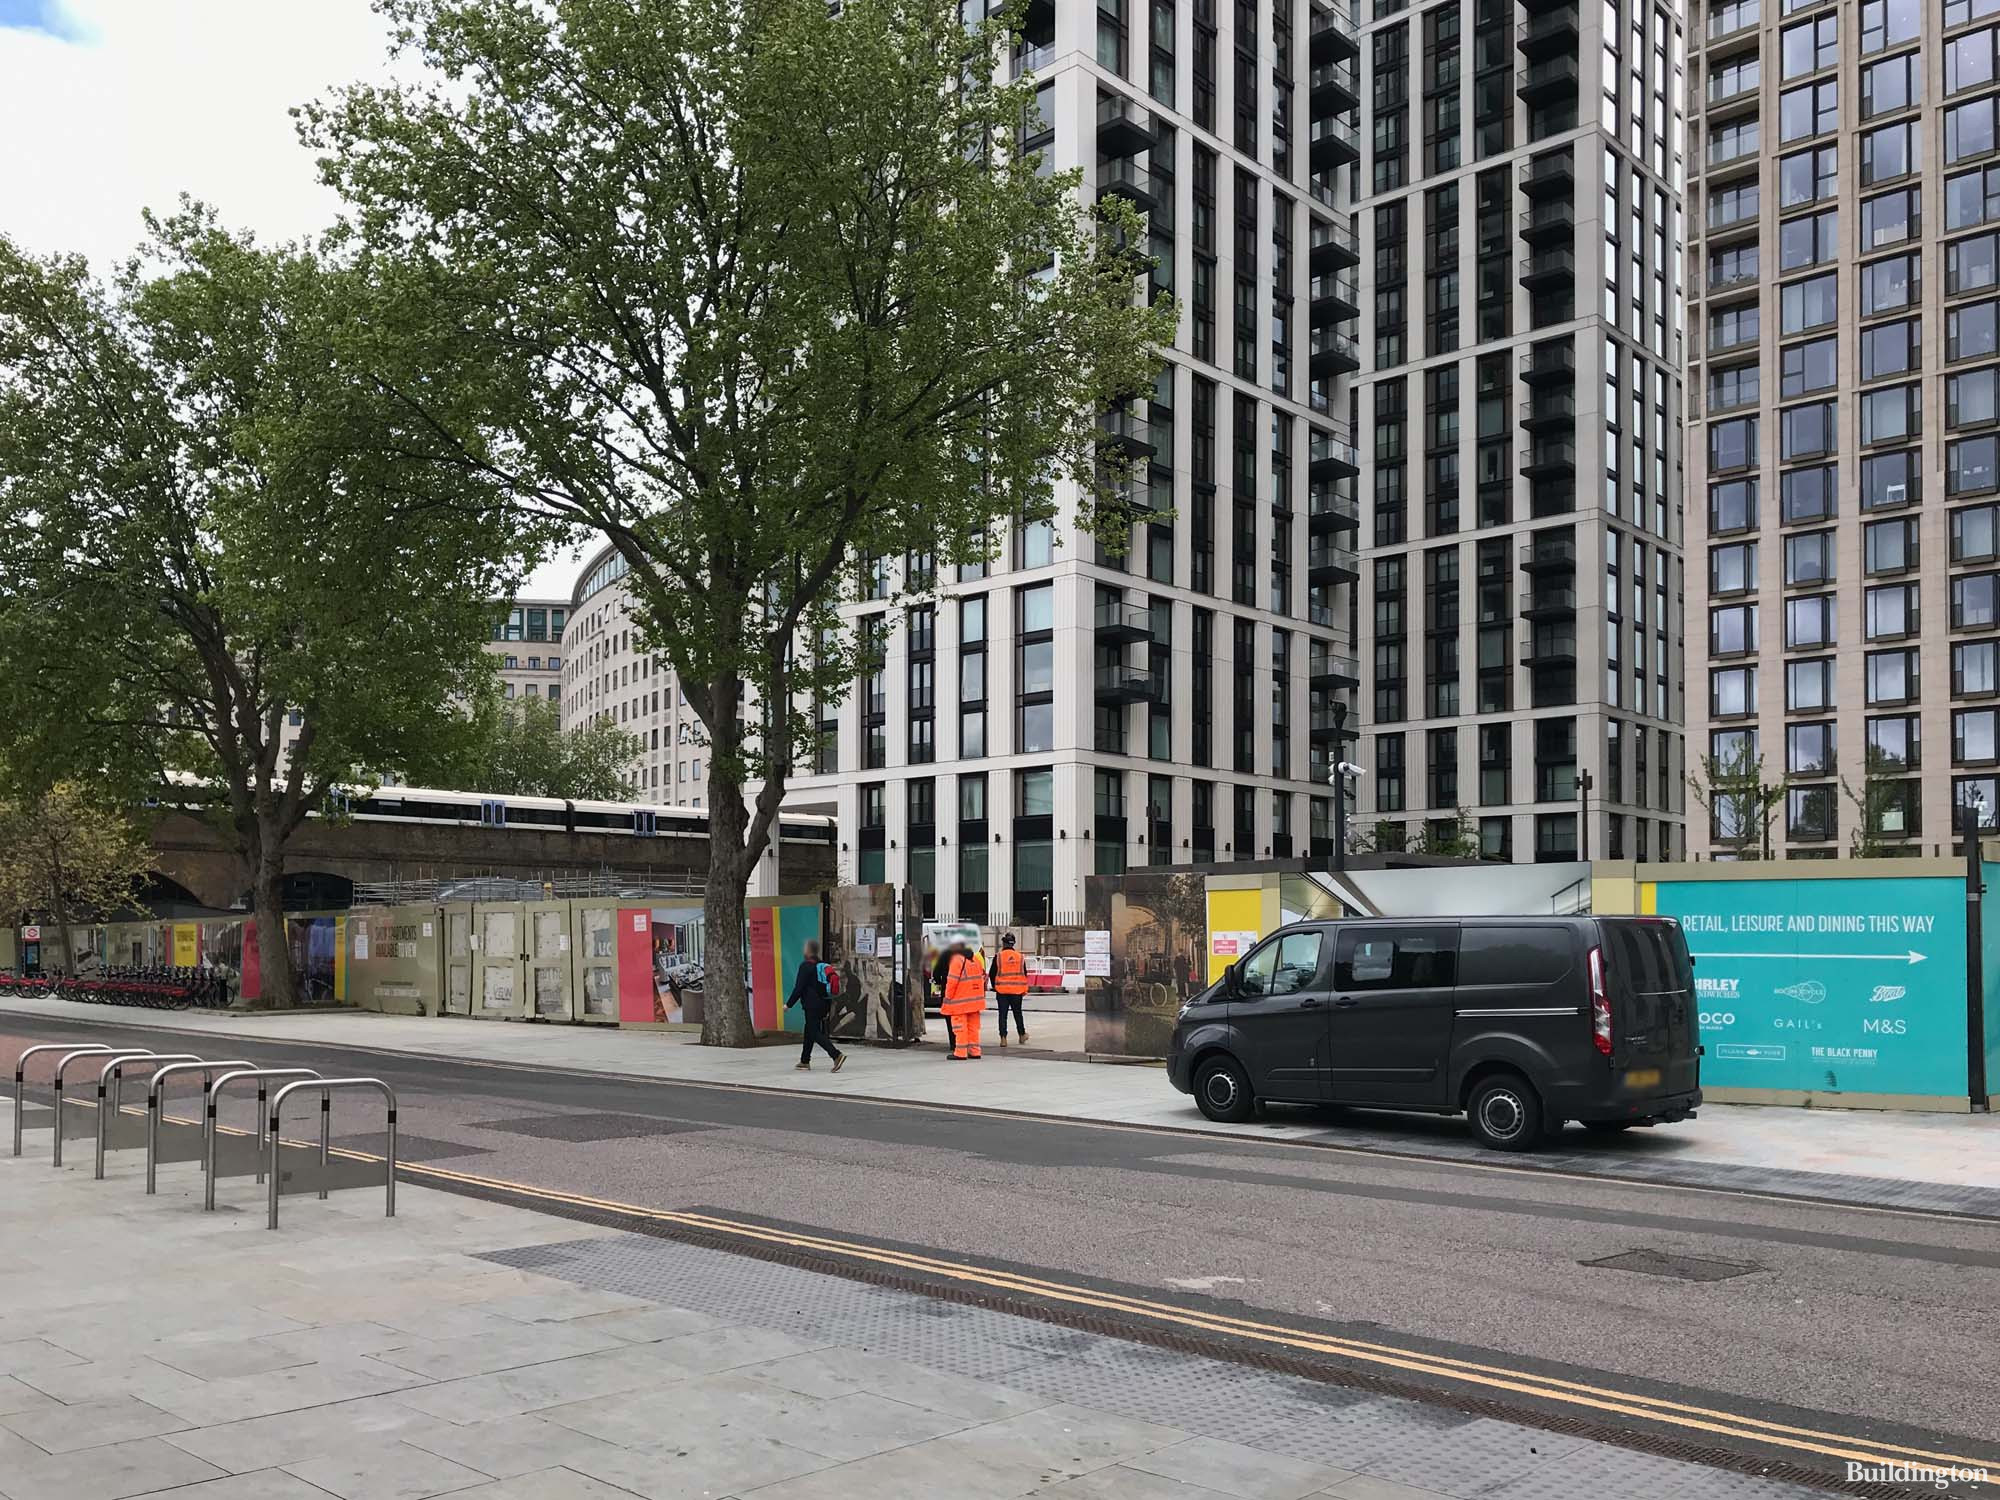 The Belvedere development site on Belvedere Road in May 2021. Other Southbank Place buildings in the background are Thirty Casson Square, One and Eight Casson Square.